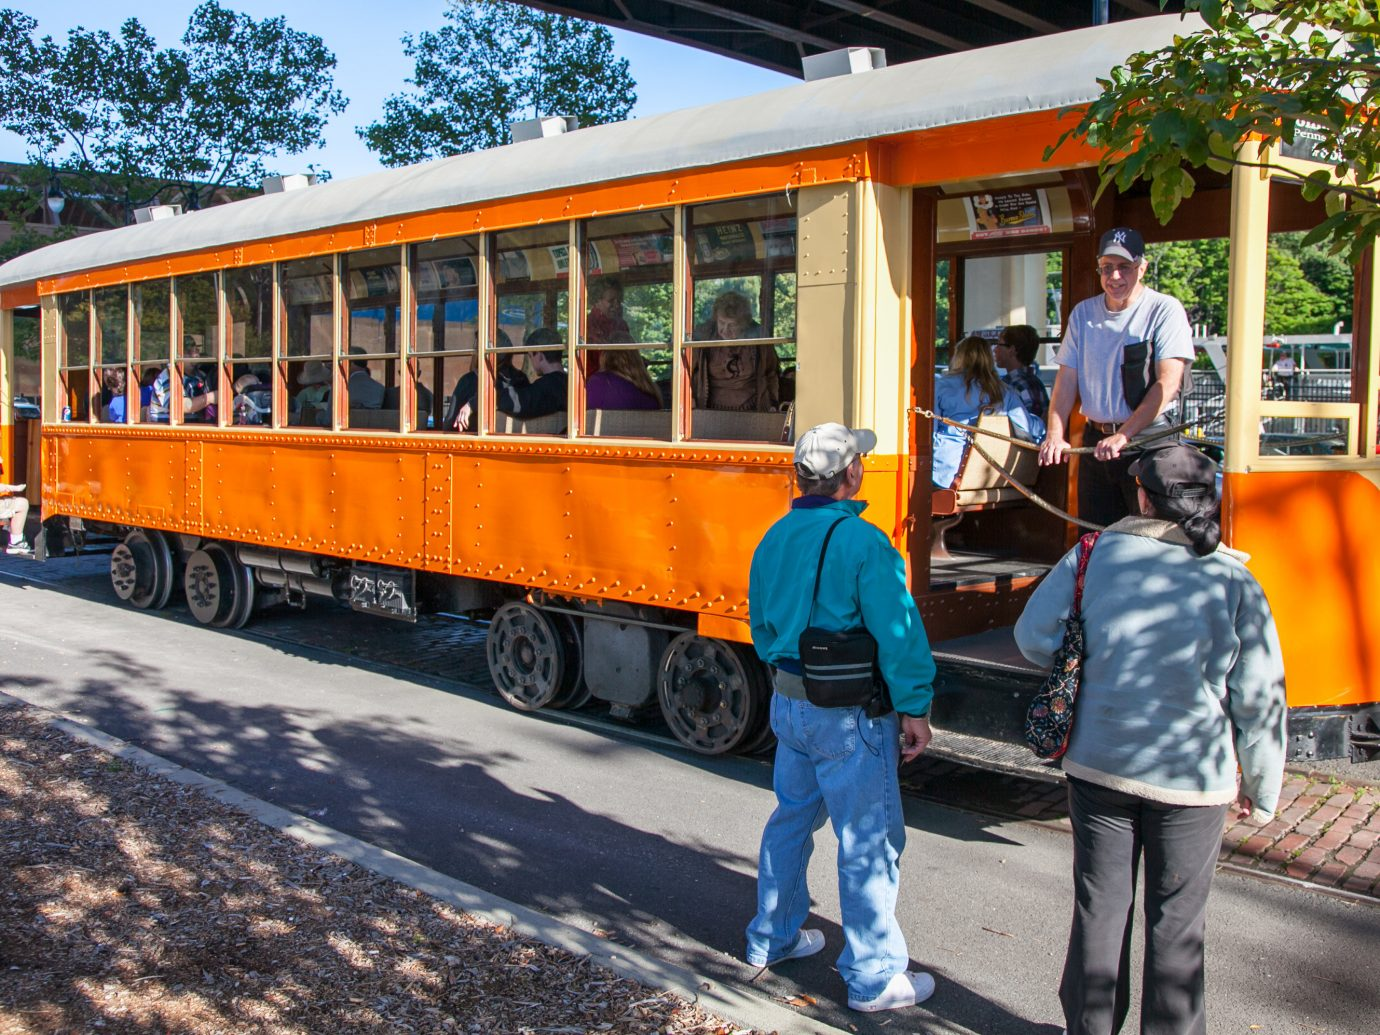 Food + Drink outdoor tree ground person vehicle transport land vehicle rolling stock cable car tourism public transport people tram passenger train bus